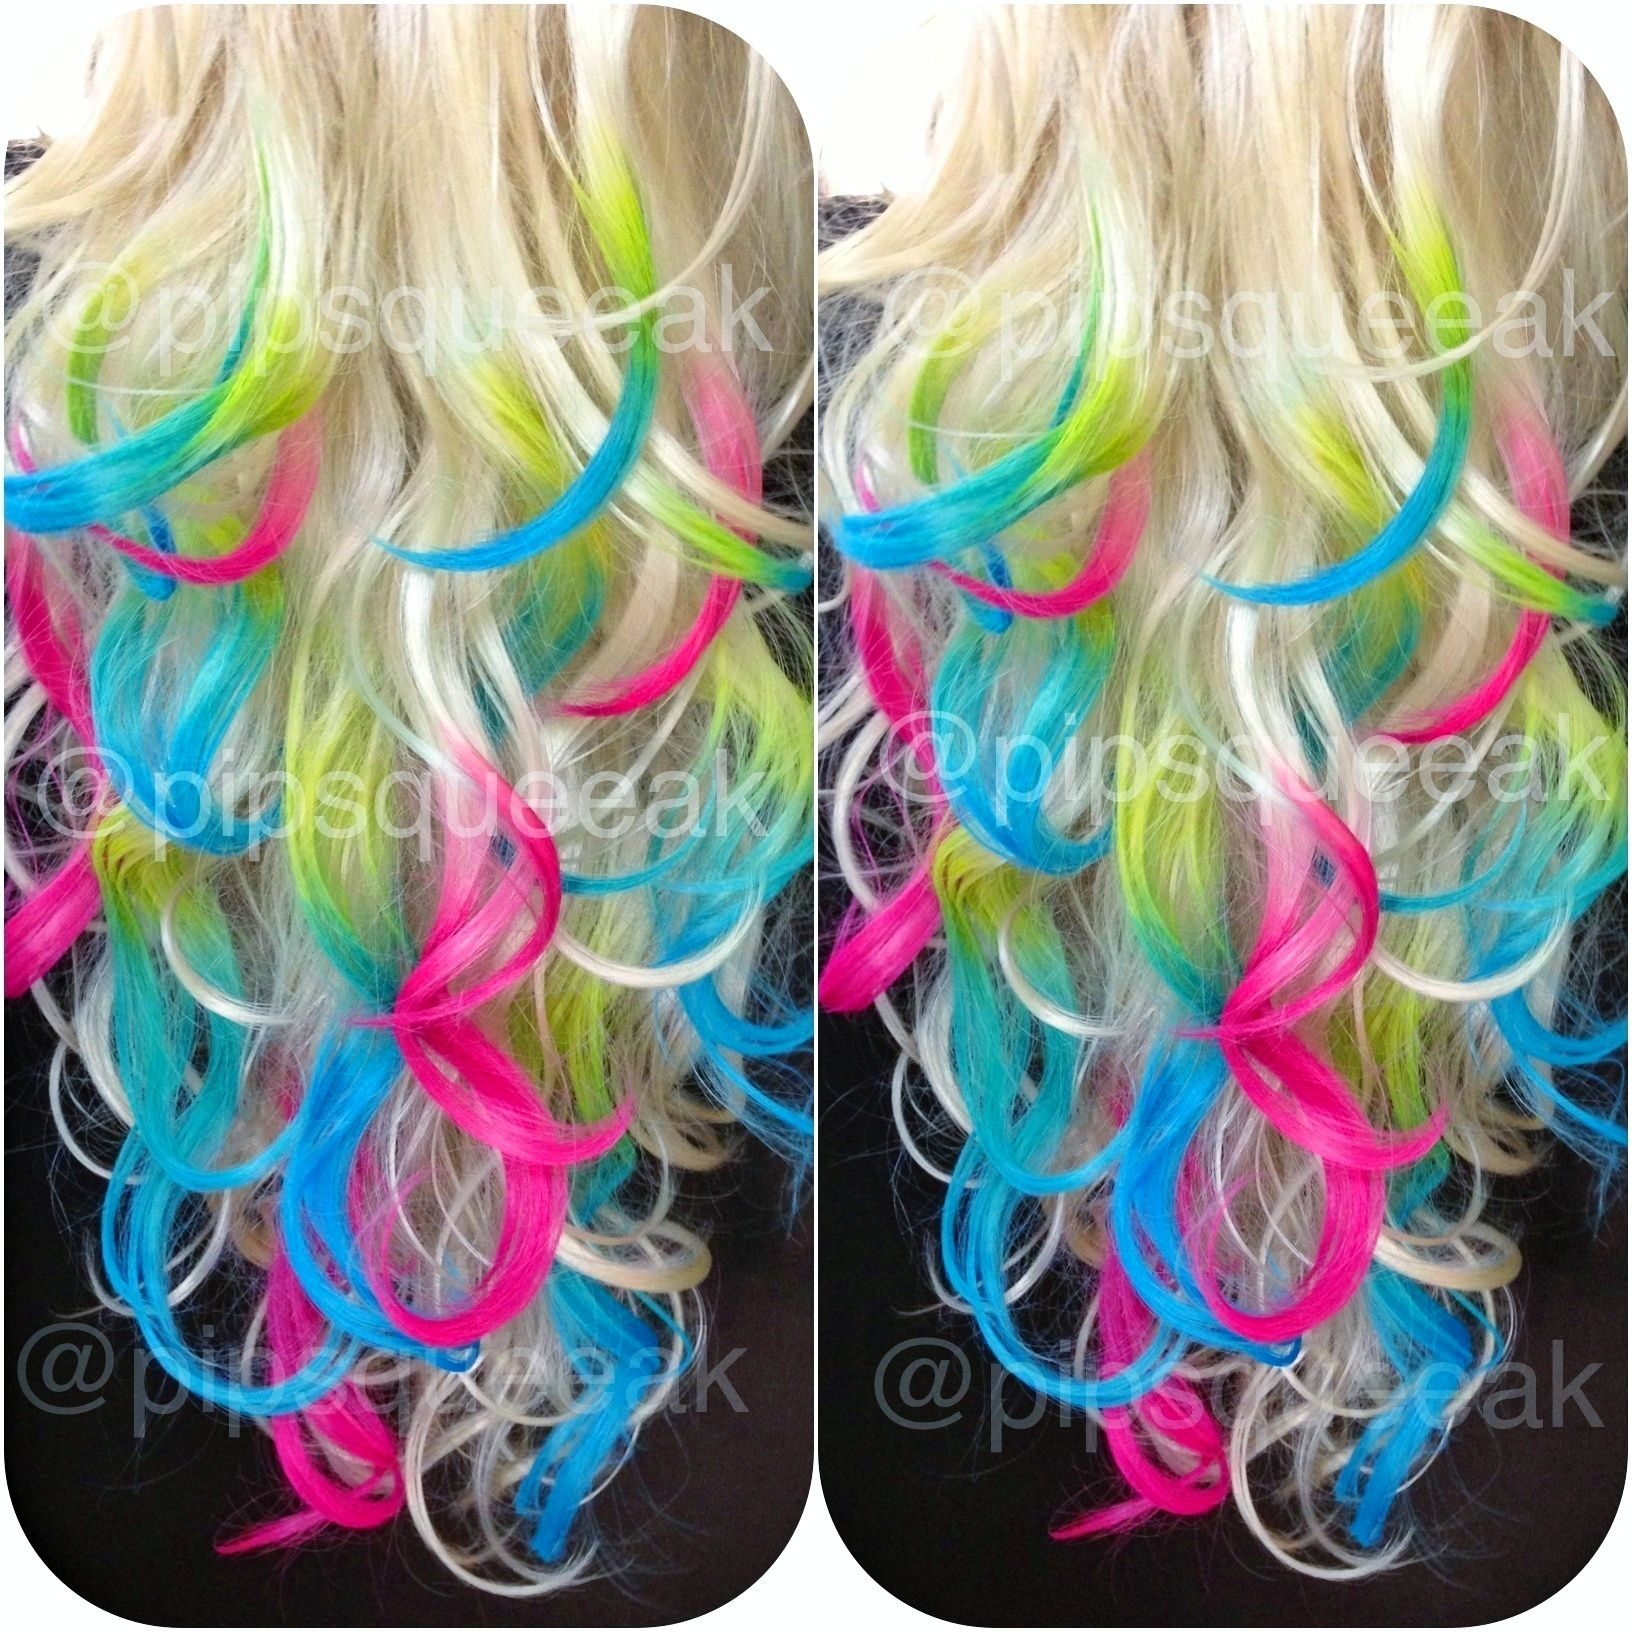 Big Pink Ombre Temporary hair Dye Set | Beverly hills, Facebook ...